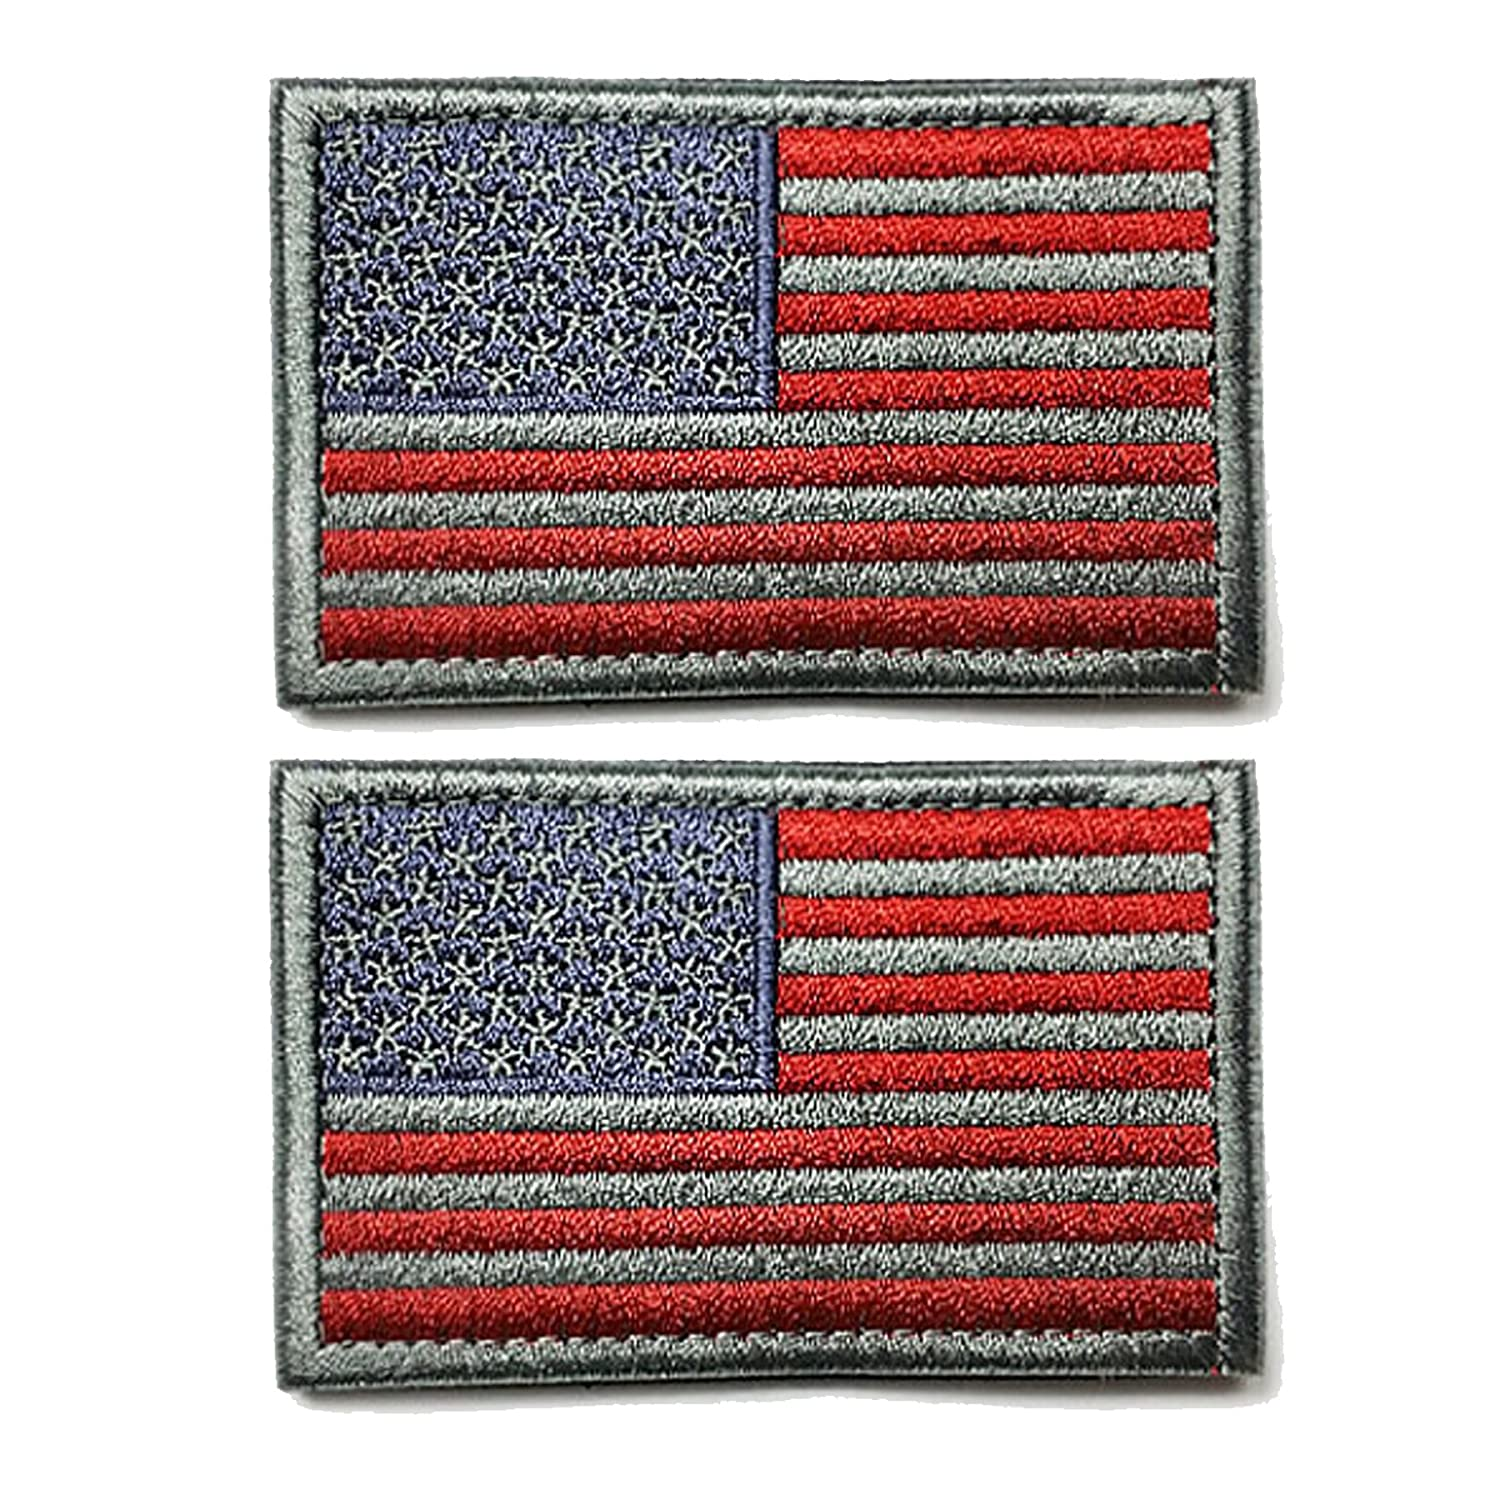 Grey and red Ogrmar Tactica American Flag Embroidered Patch USA United States of America Military Uniform Emblem Pack of 2